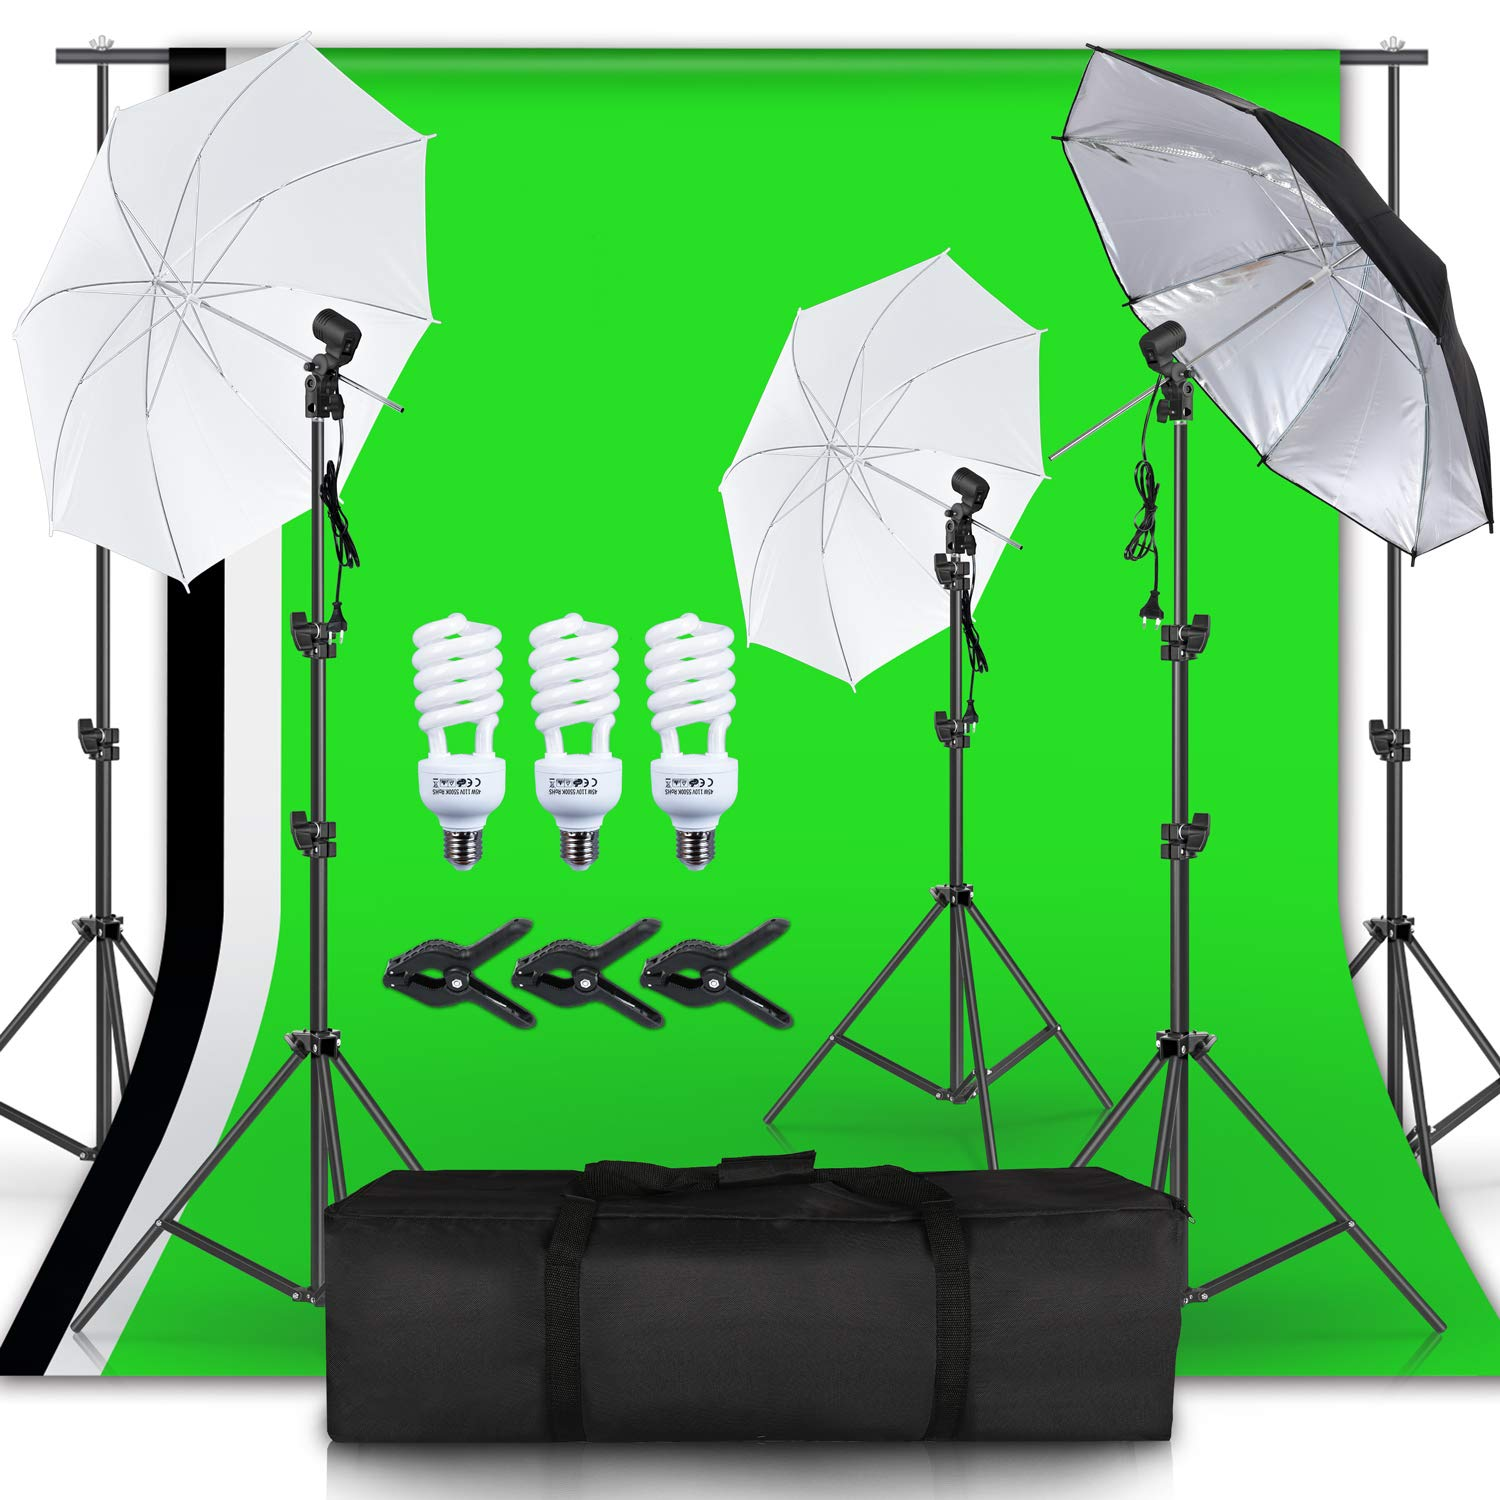 Photography Soft Light Umbrella Professional Photography Studio 5500K Daylight Continuous Lighting Photography Light Kit for Still Life Portrait Video Photography